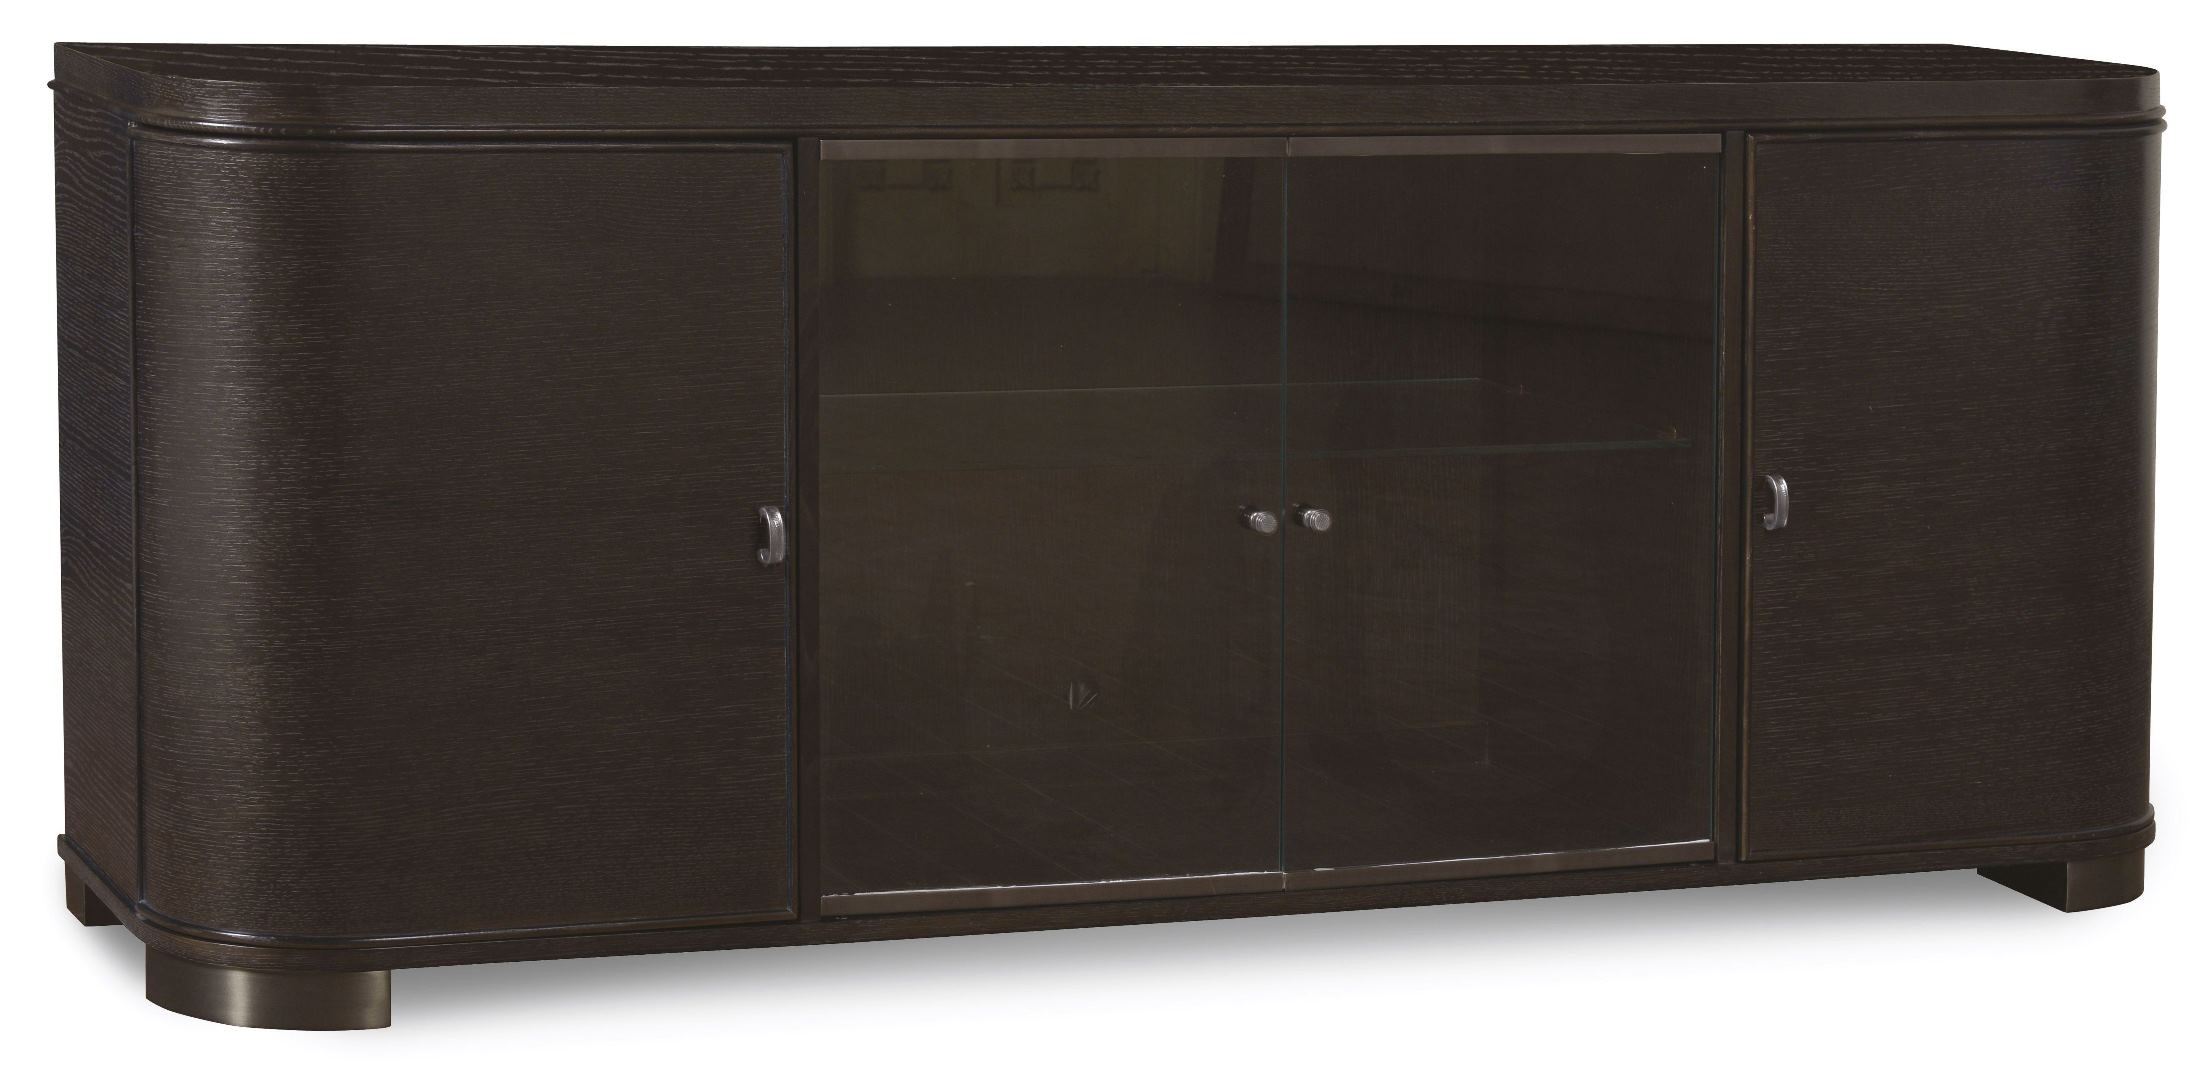 Greenpoint Entertainment Console From Art 214423 2304 Coleman Furniture